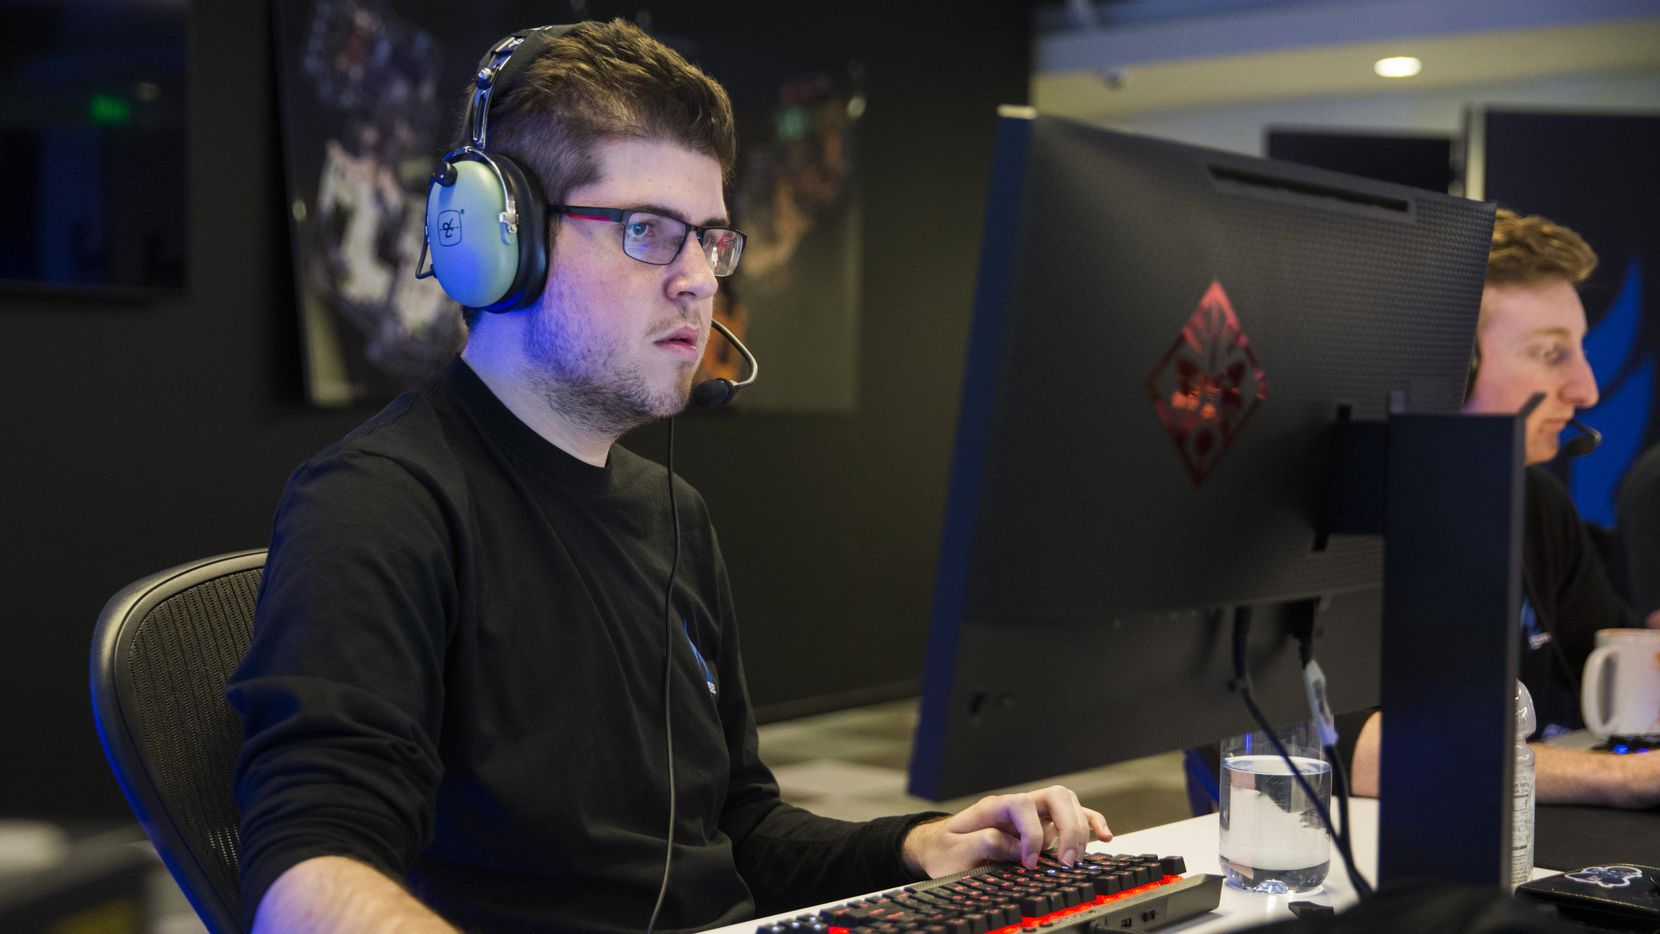 """Dallas Fuel's William """"Crimzo"""" Hernandez  practices on Wednesday, January 29, 2020 at Envy Gaming headquarters in Dallas. (Ashley Landis/The Dallas Morning News)"""